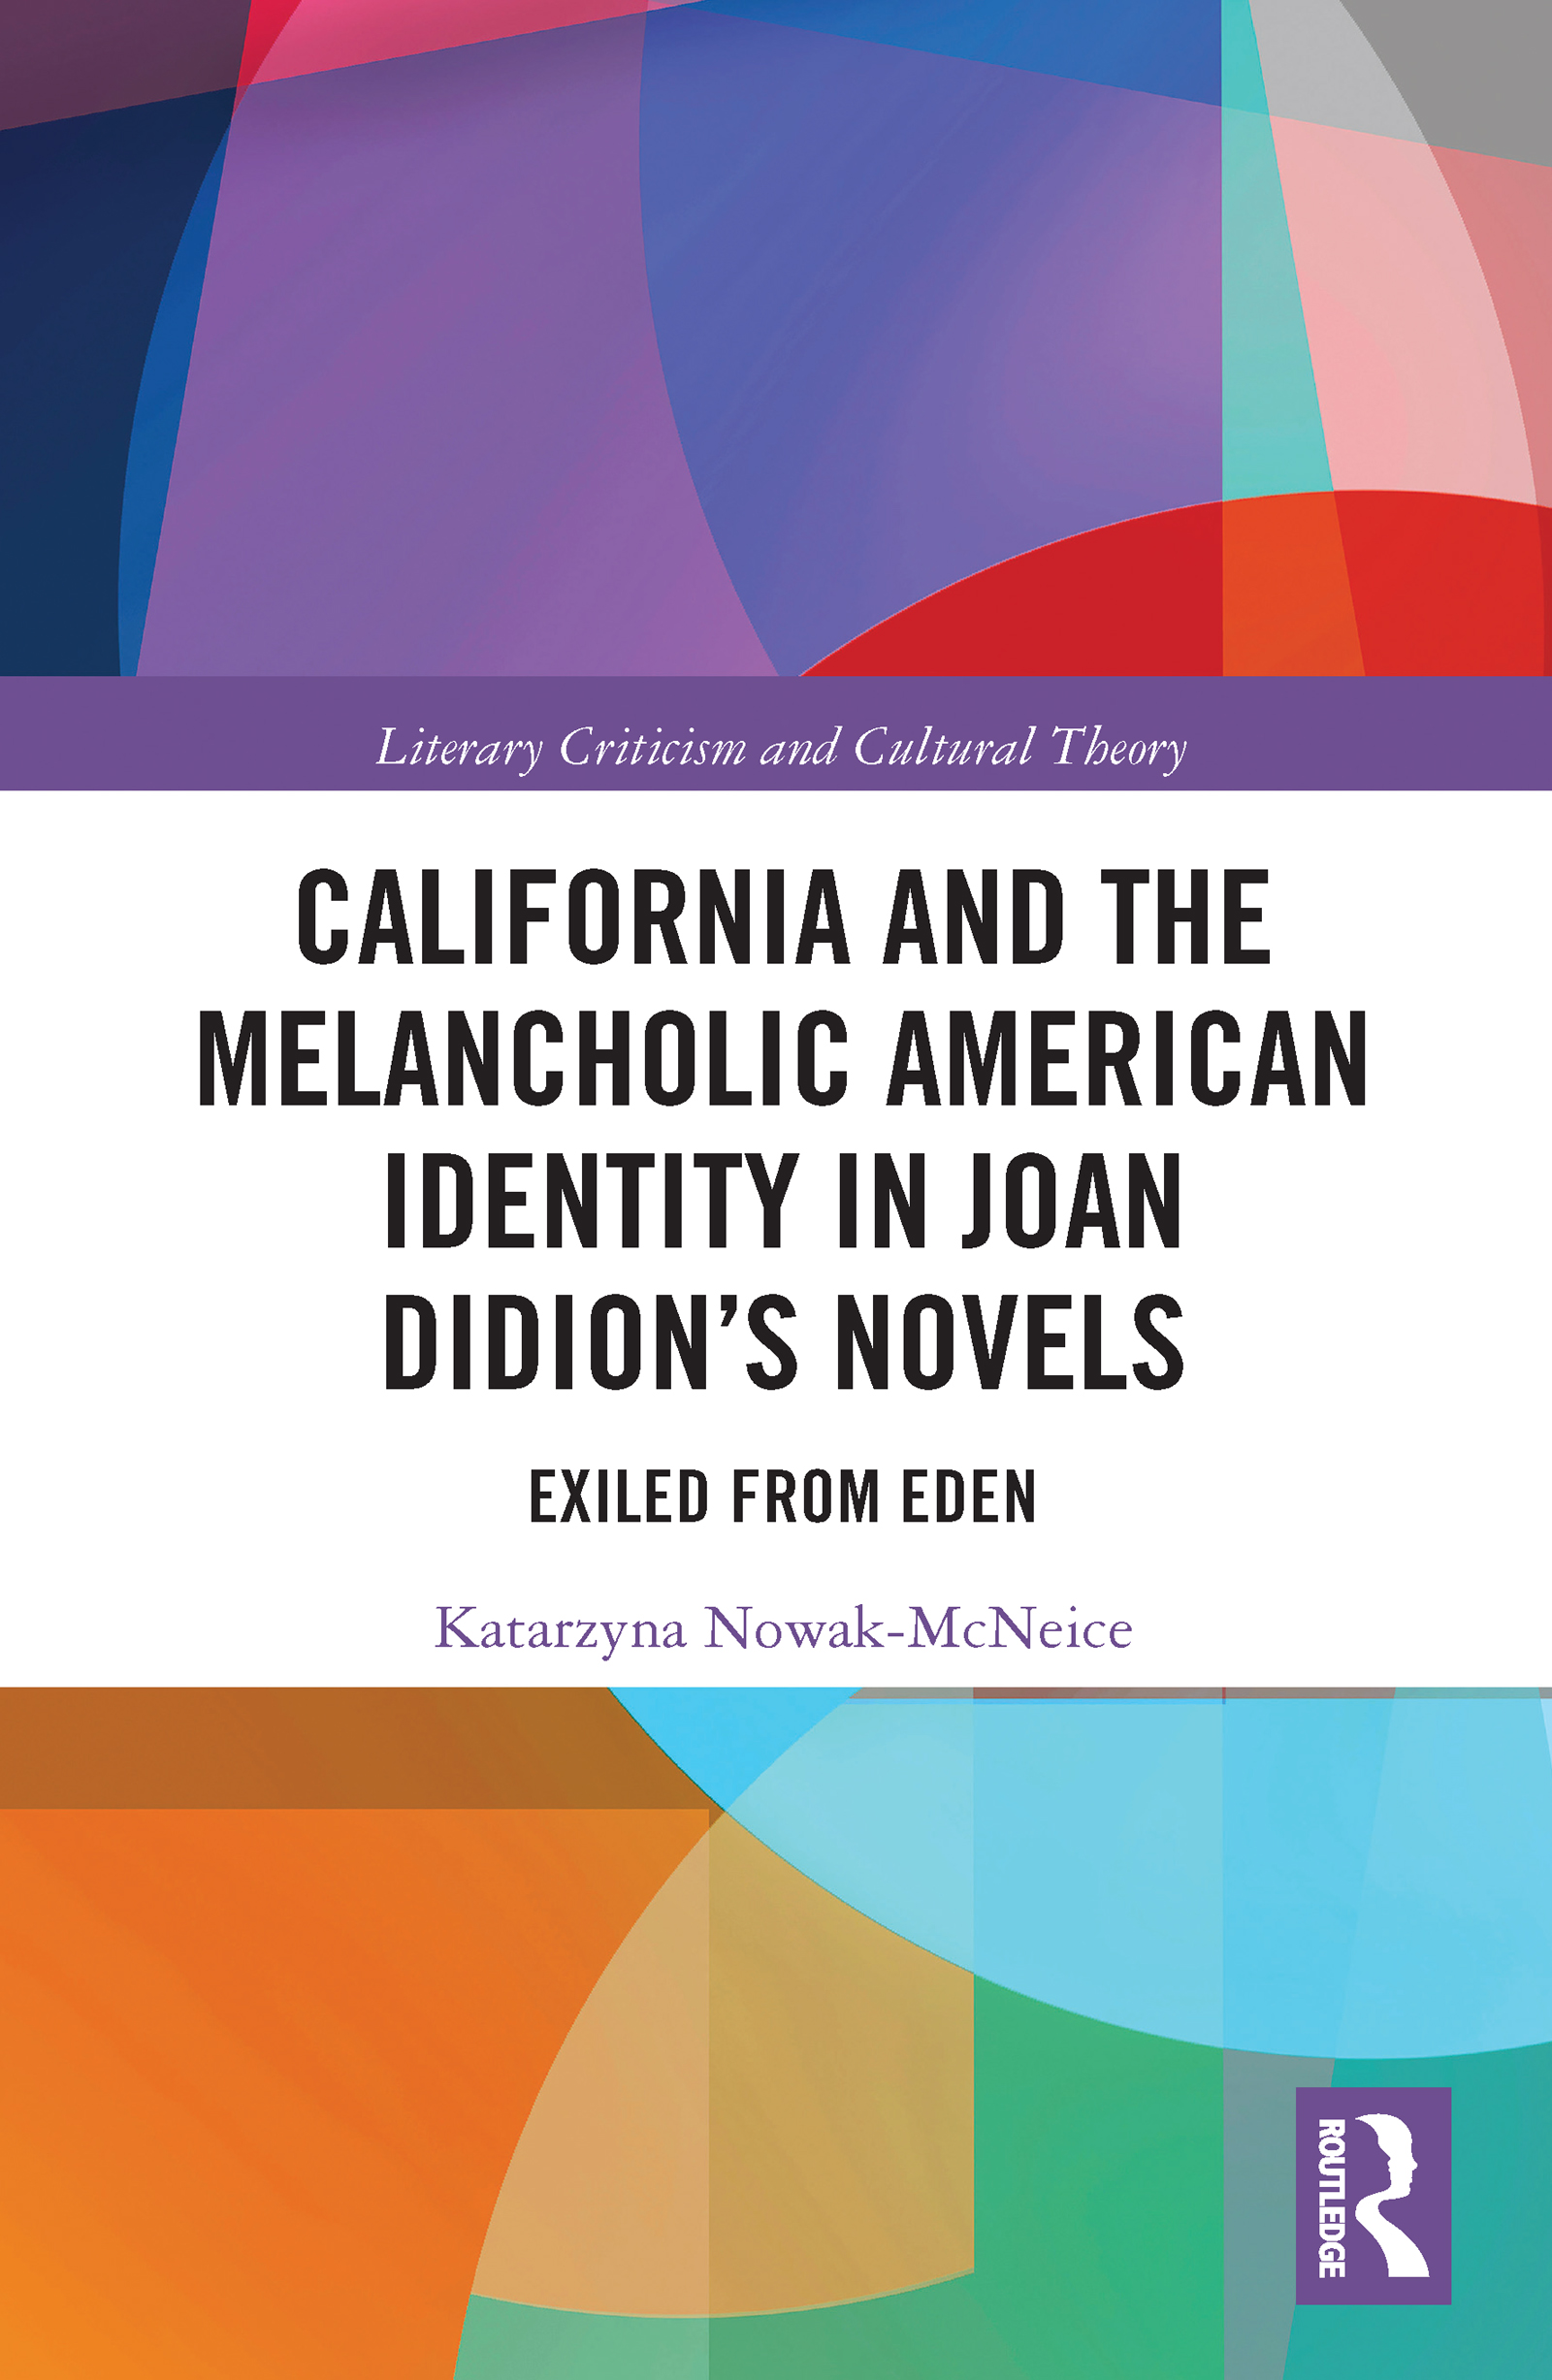 California and the Melancholic American Identity in Joan Didion's Novels